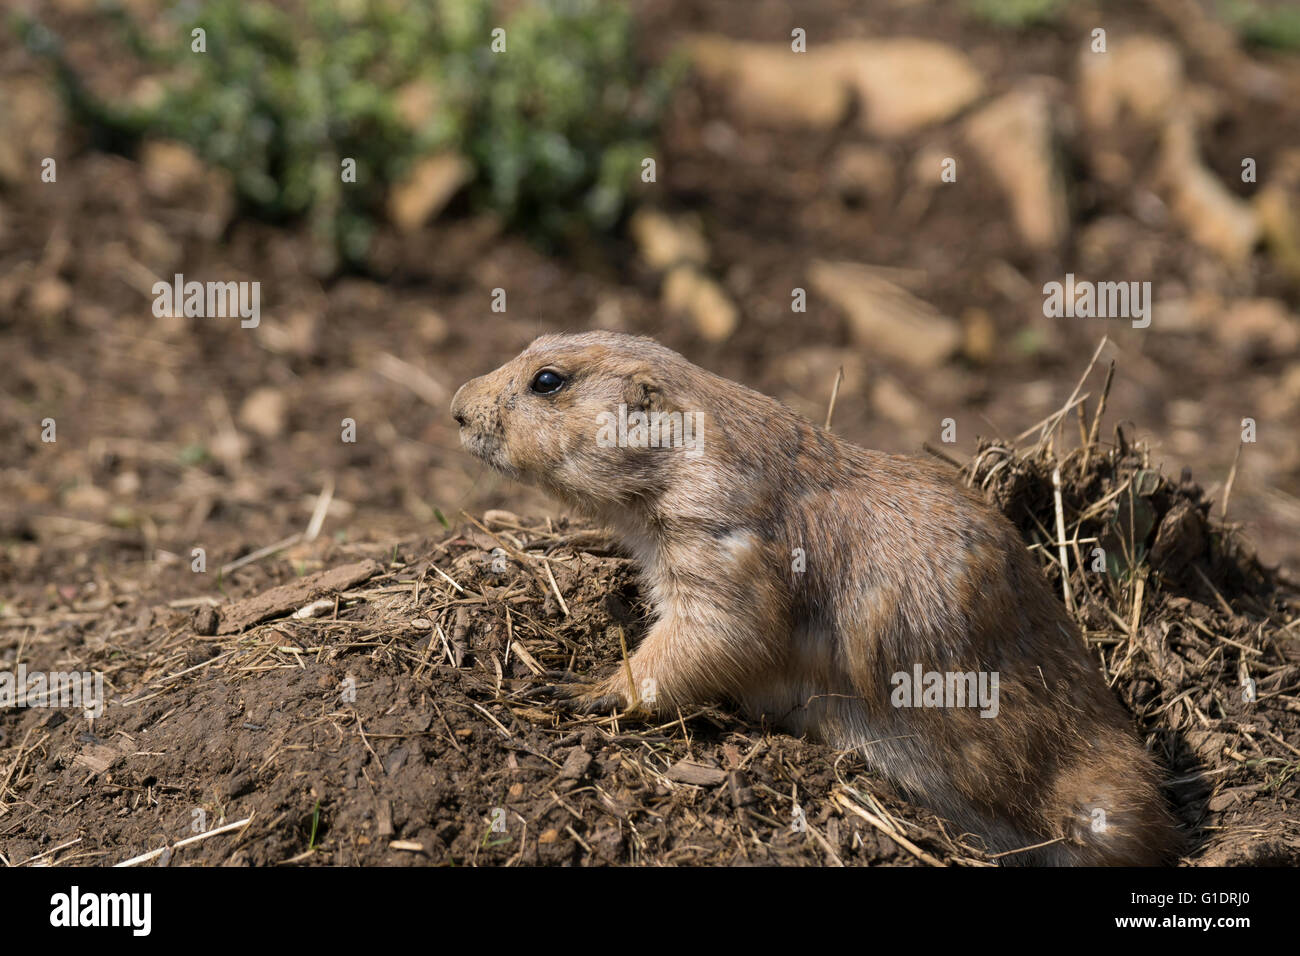 Prairie dogs are herbivorous burrowing rodents native to the grasslands of North America - Stock Image